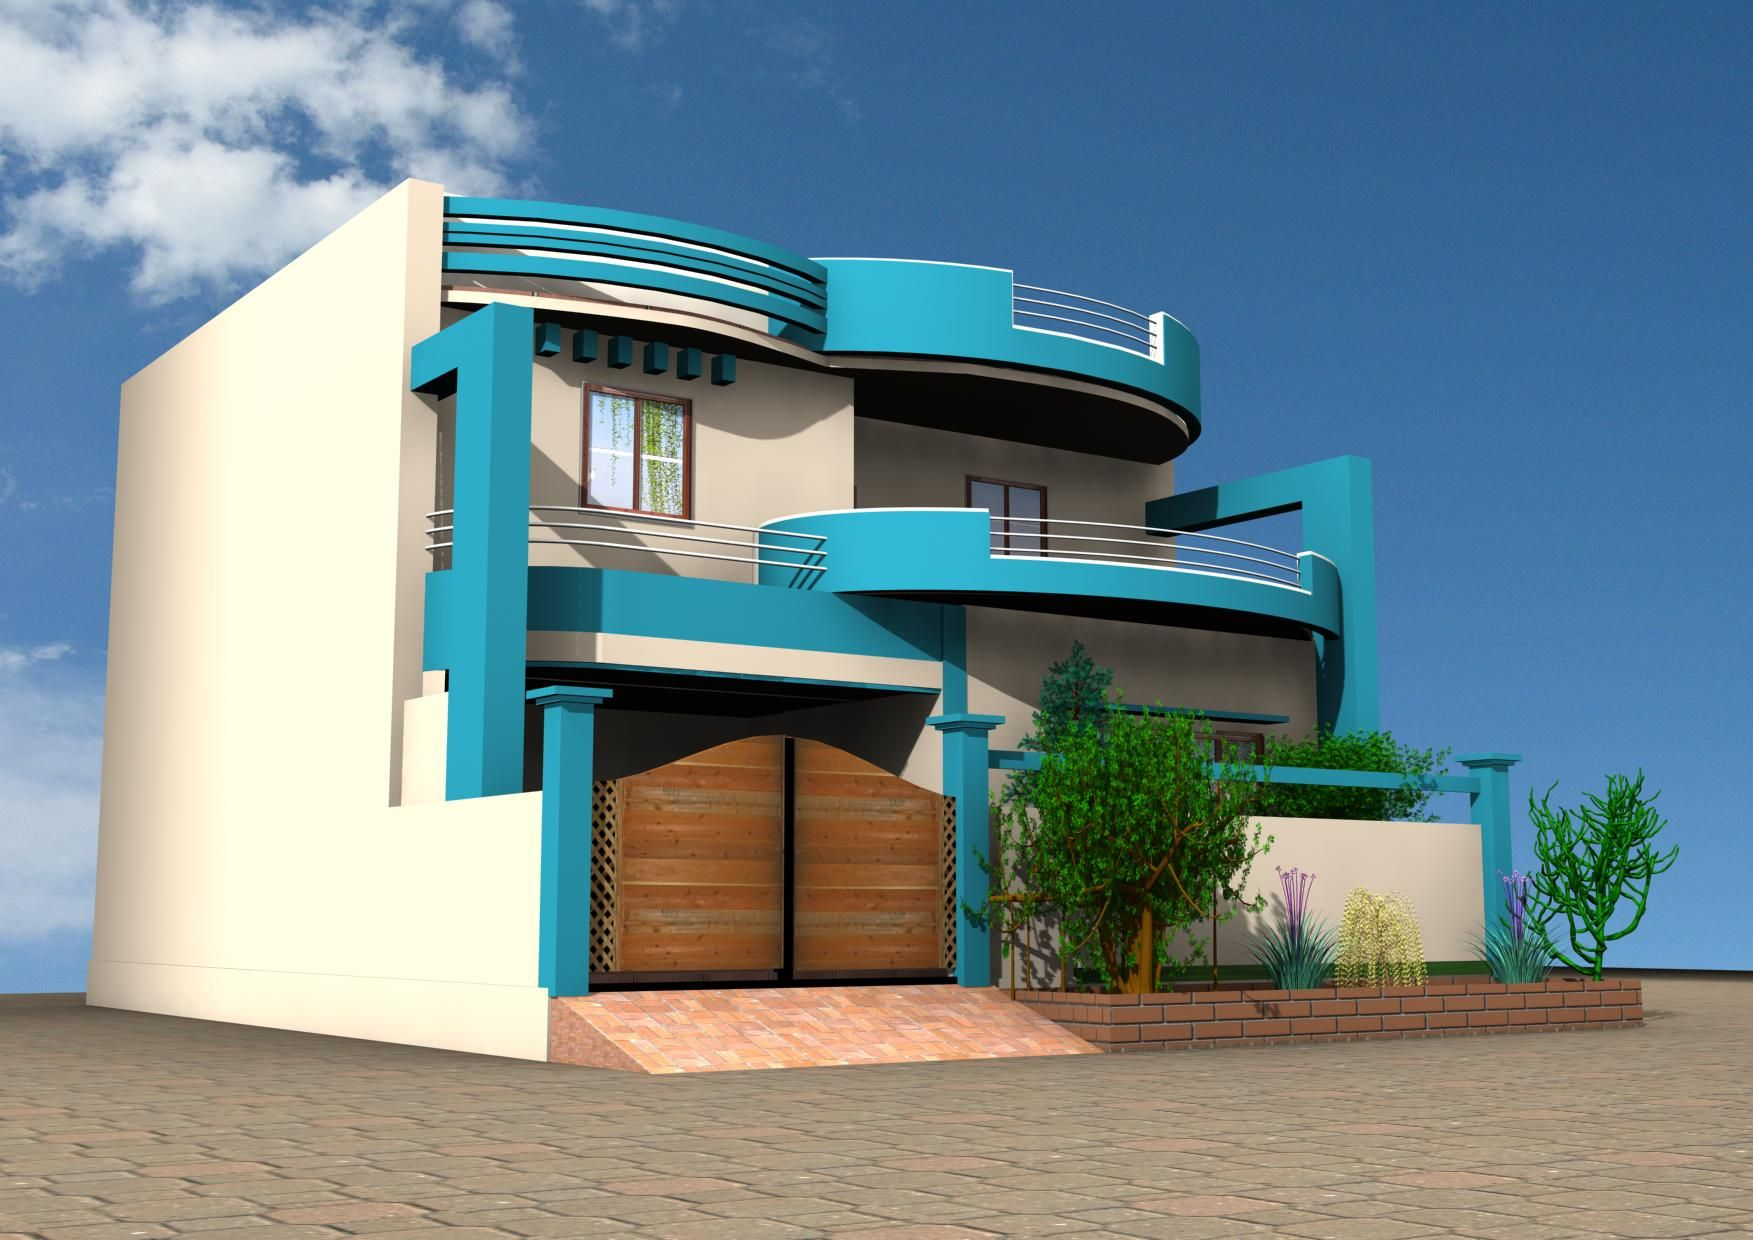 3d home design images hd 1080p for House designs online